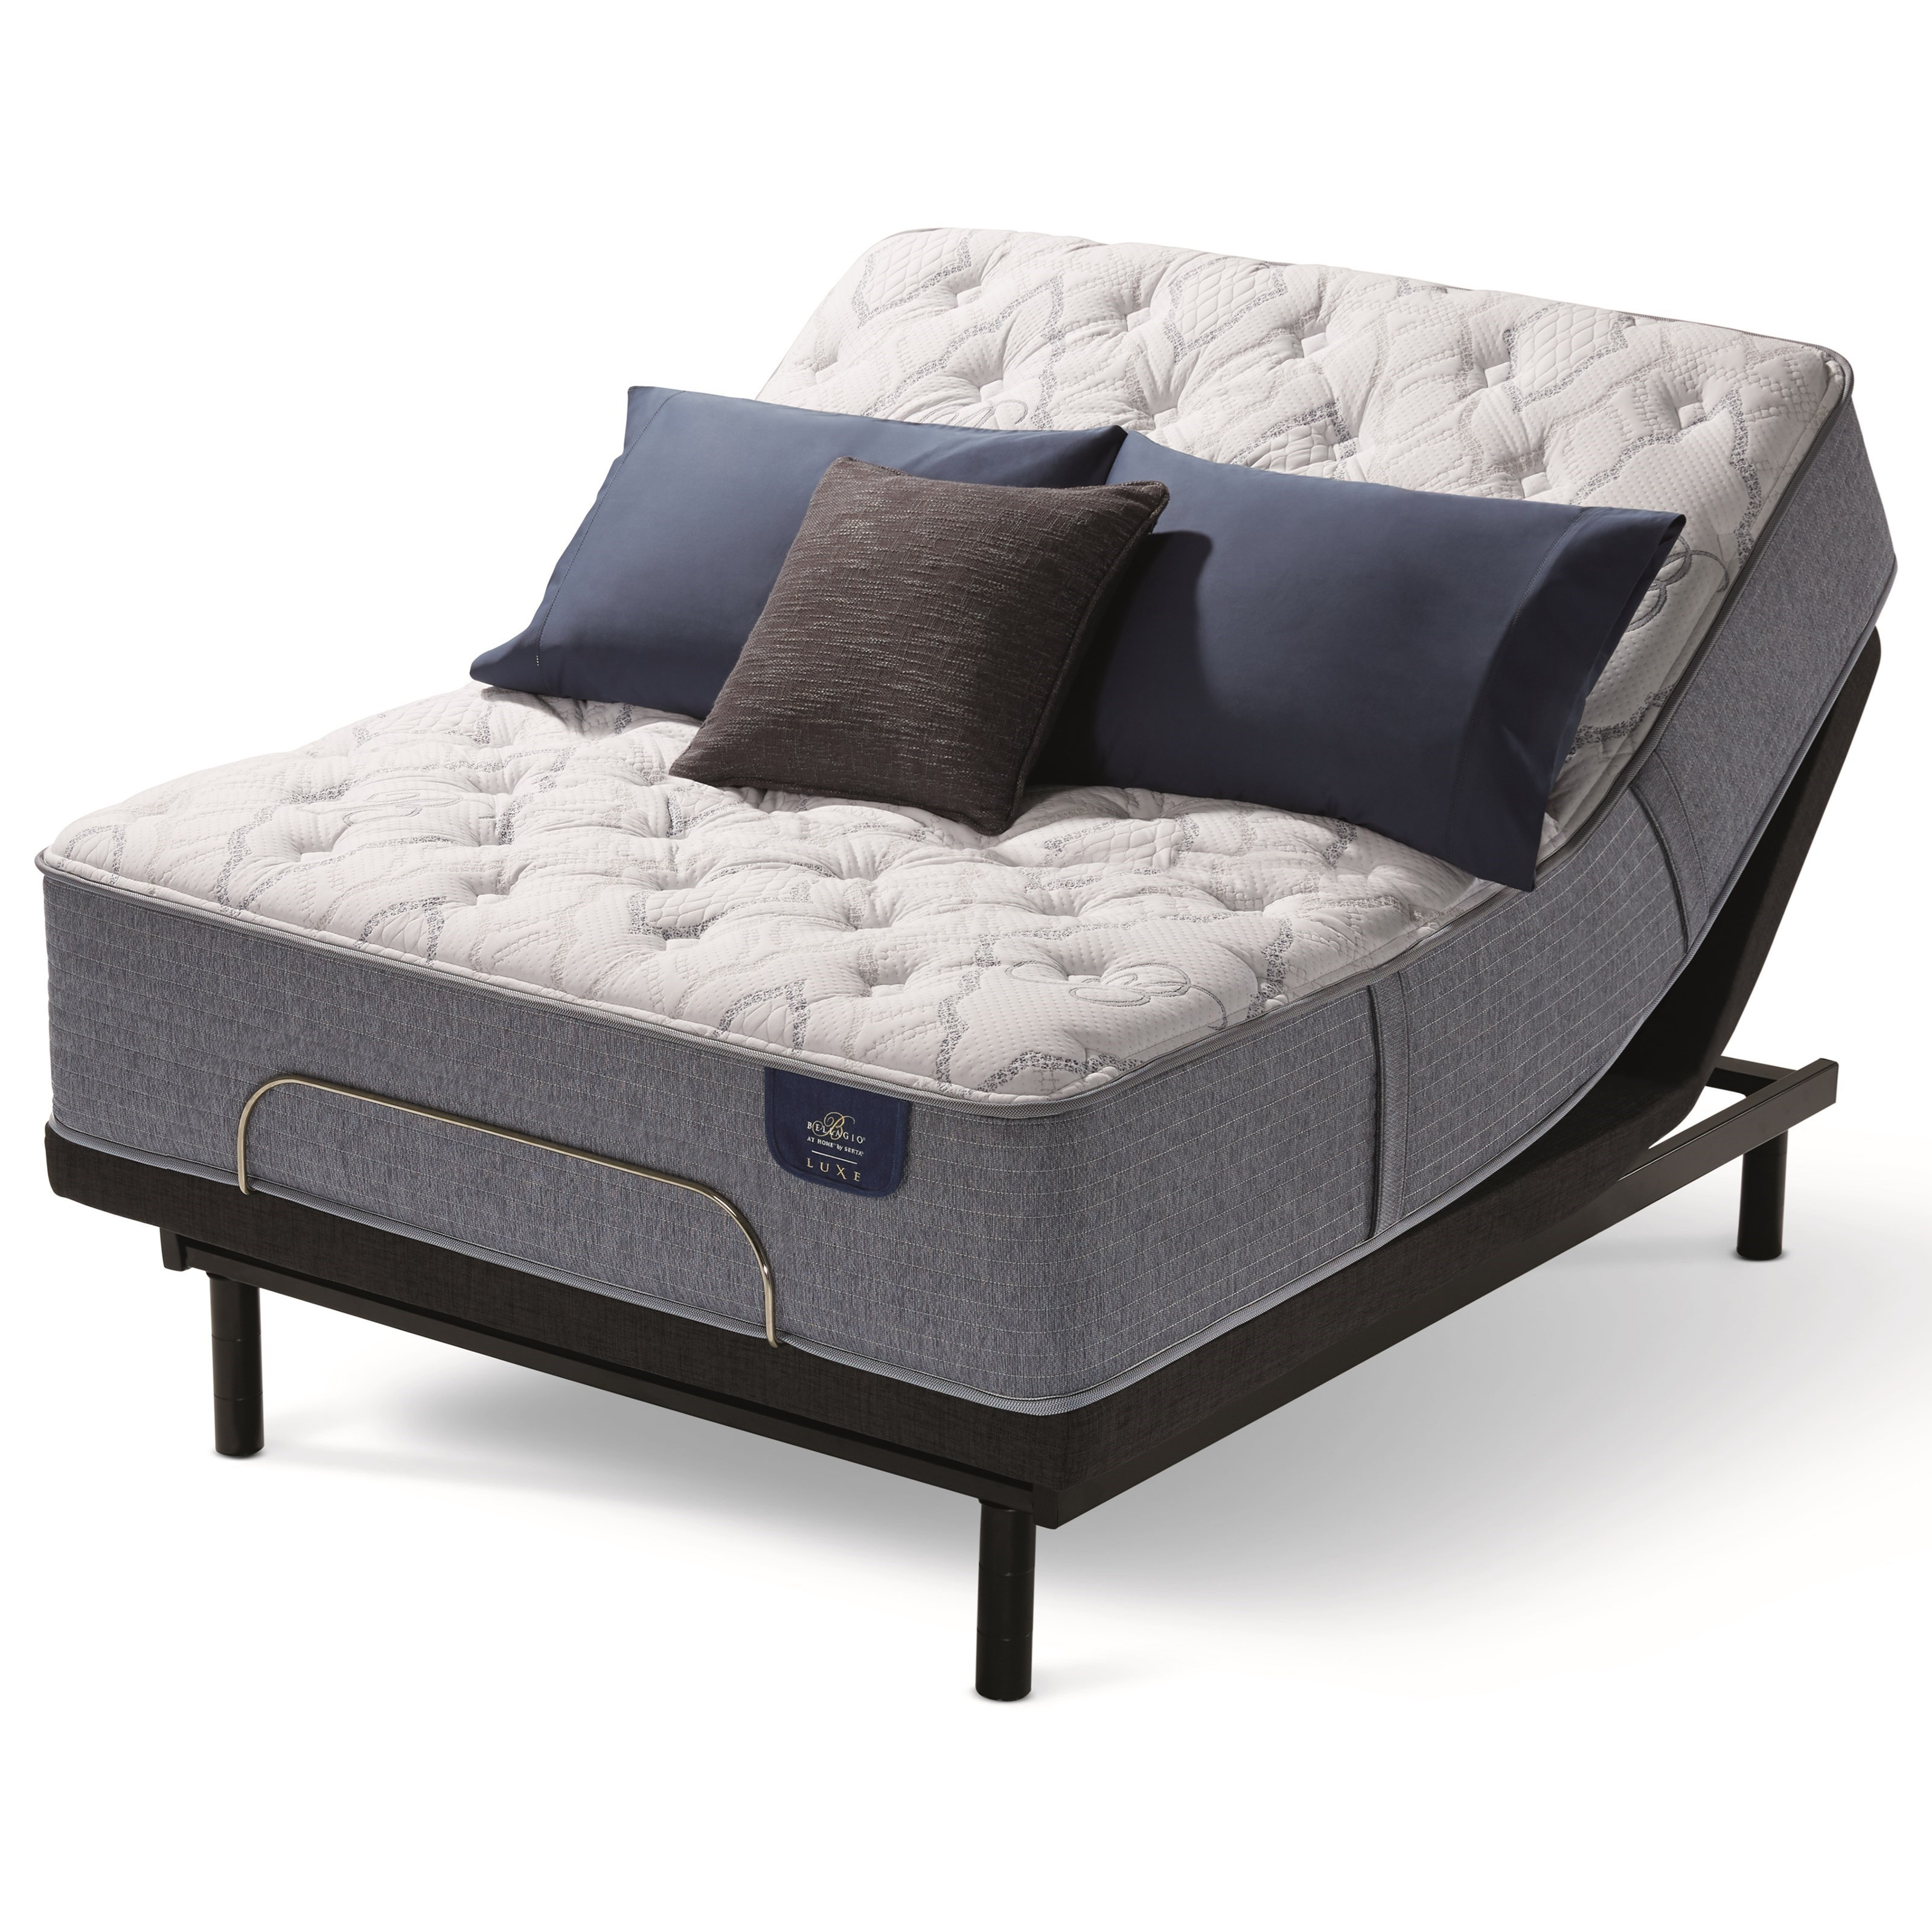 Bellagio Bellissimo Firm Twin XL Firm Hybrid Adjustable Set by Serta at Adcock Furniture